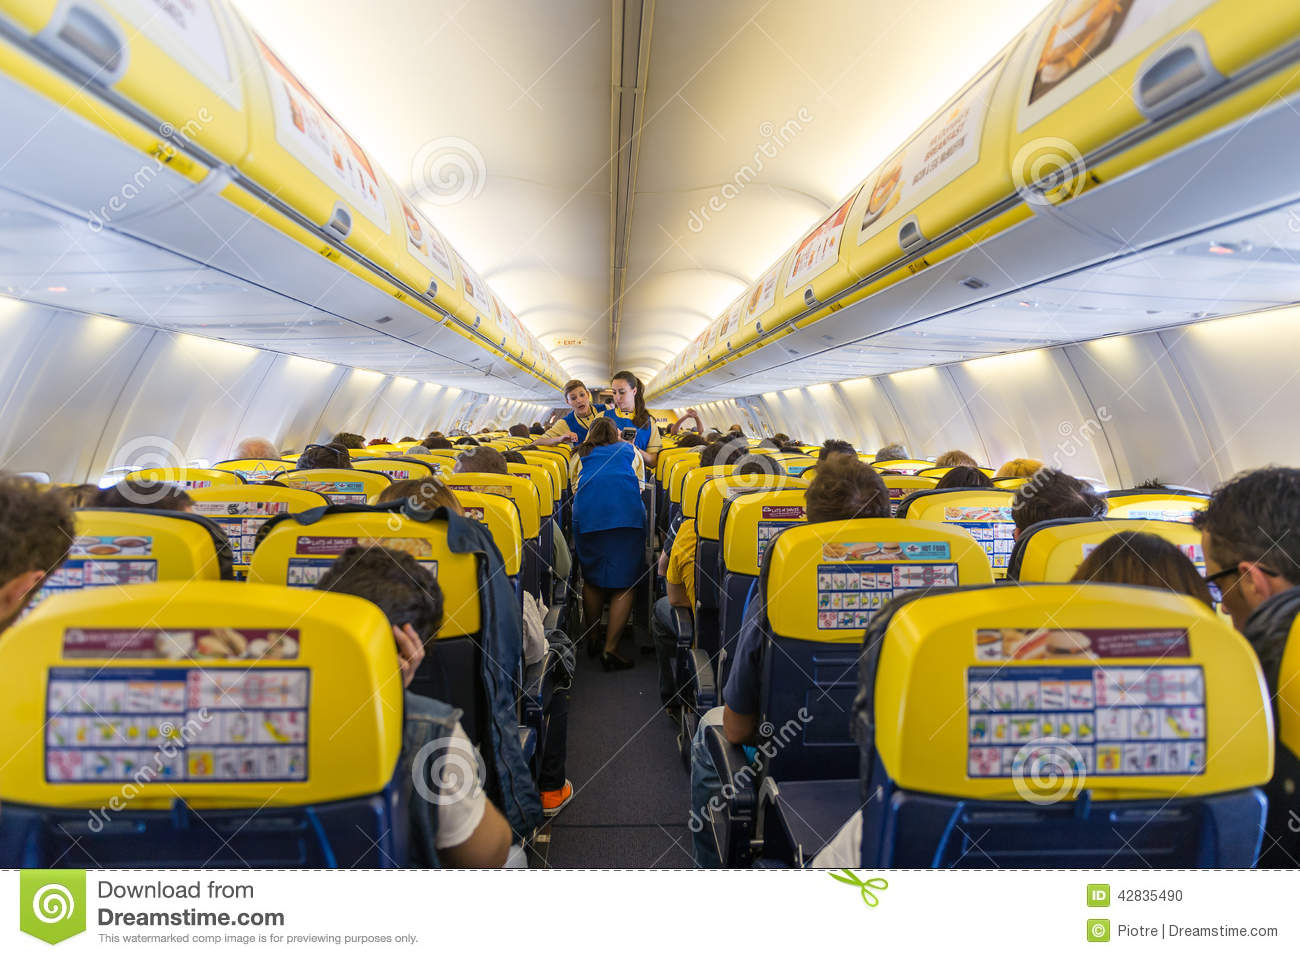 ryanair jet airplanes interior view editorial image